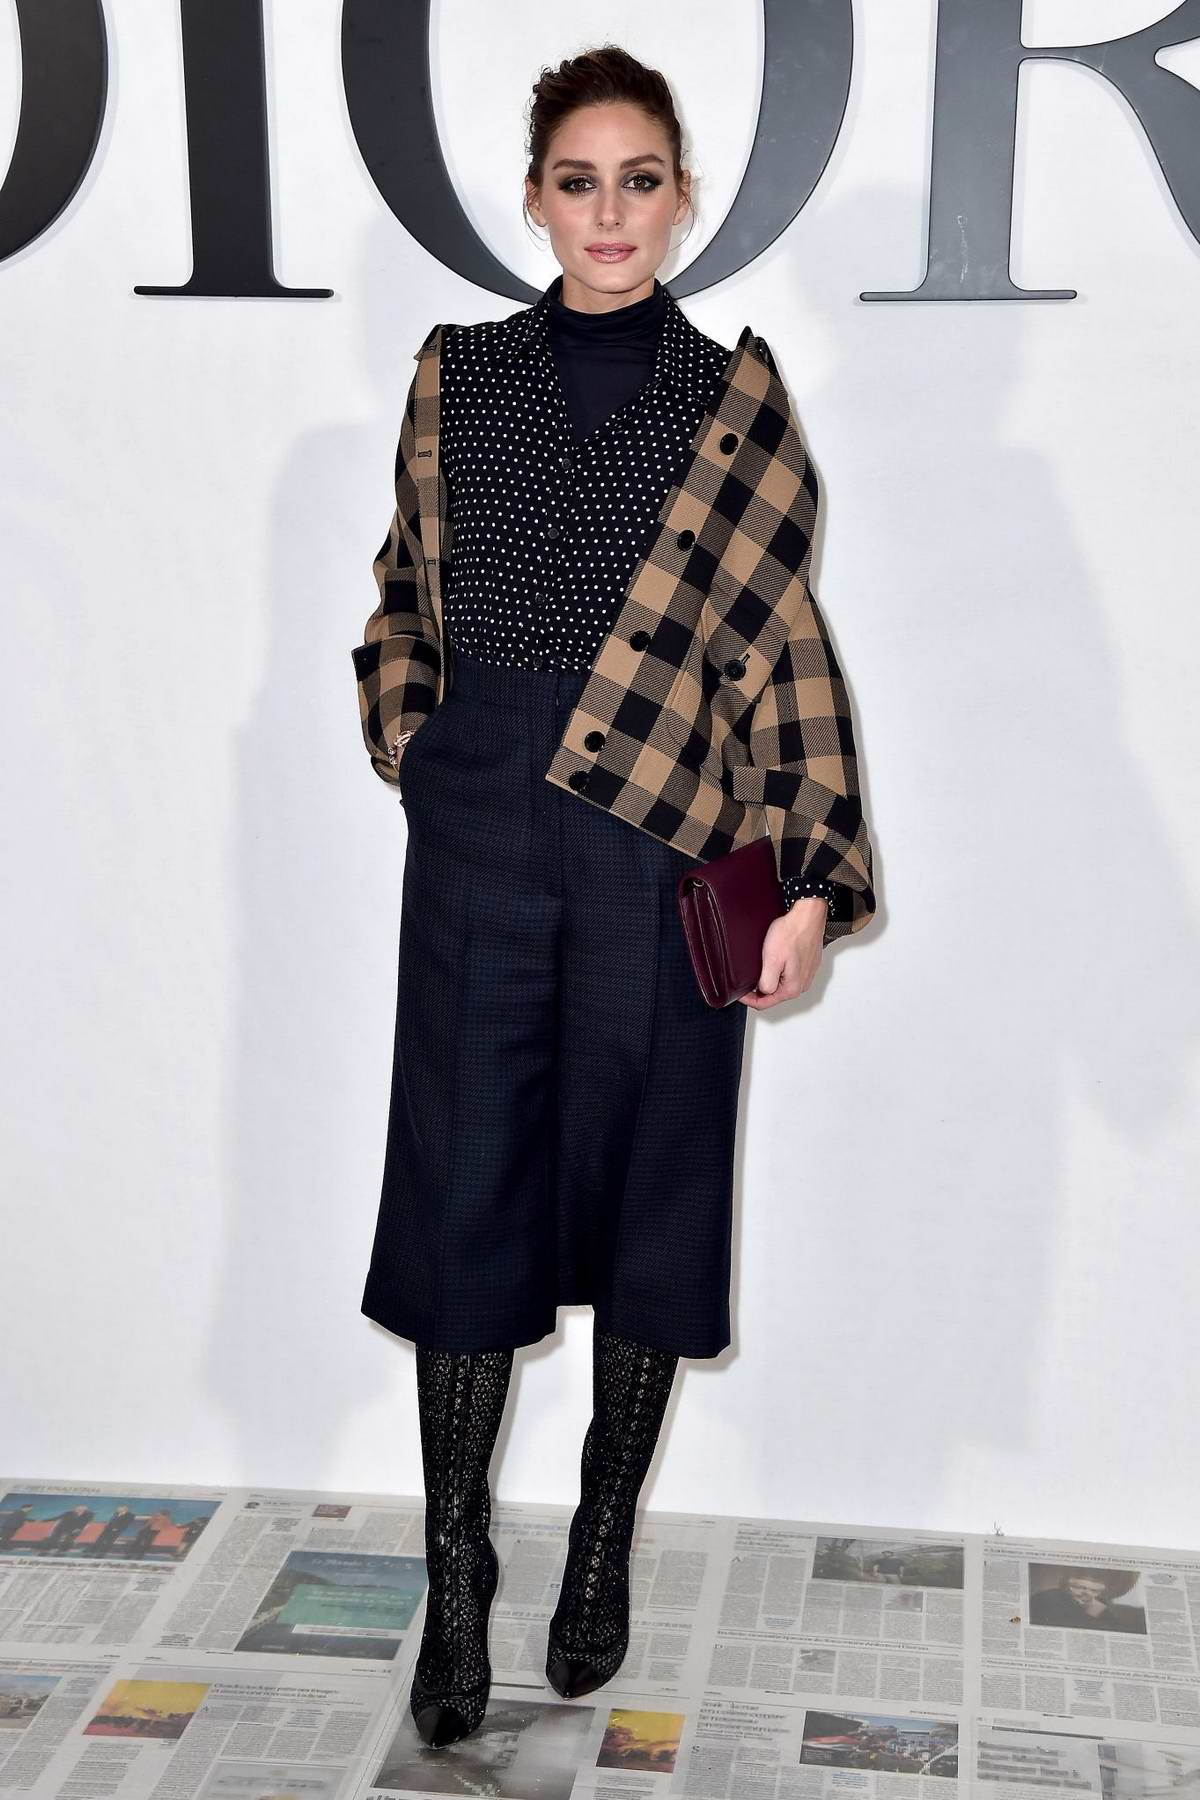 Olivia Palermo attends the Dior show, F/W 2020 during Paris Fashion Week in Paris, France